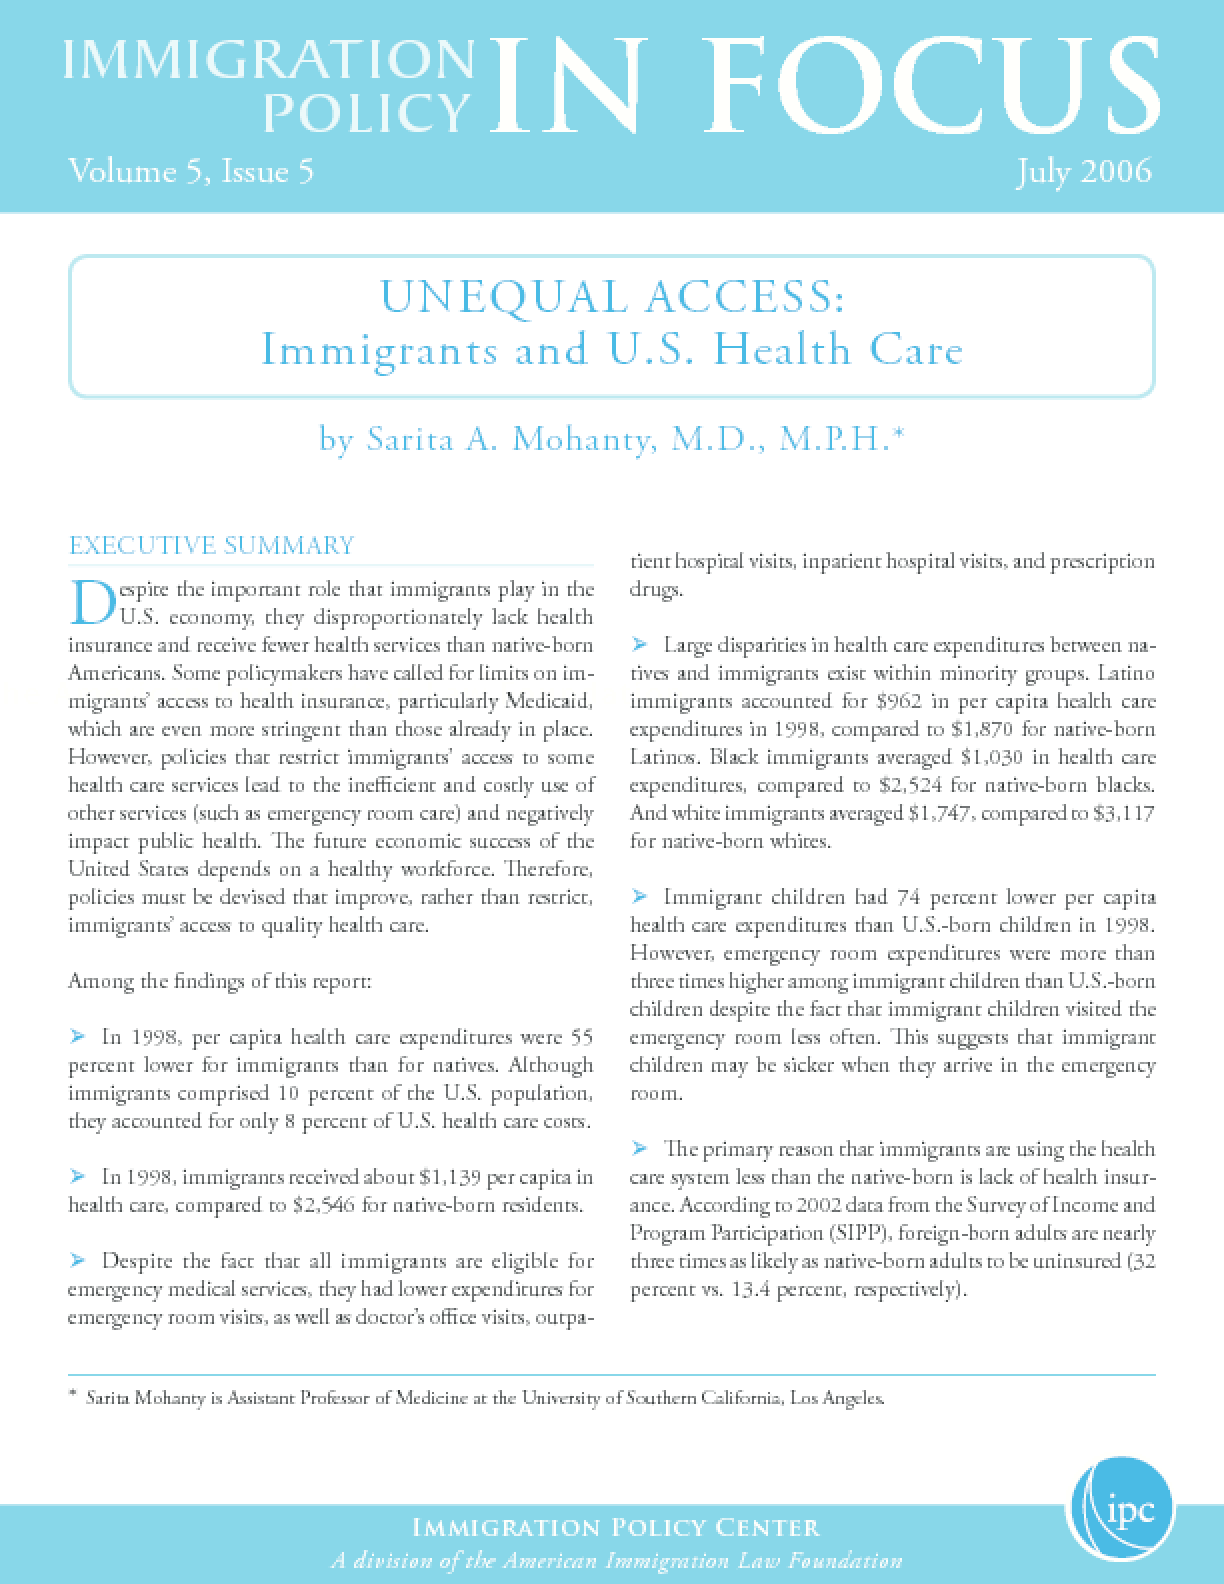 Unequal Access: Immigrants and U.S. Health Care